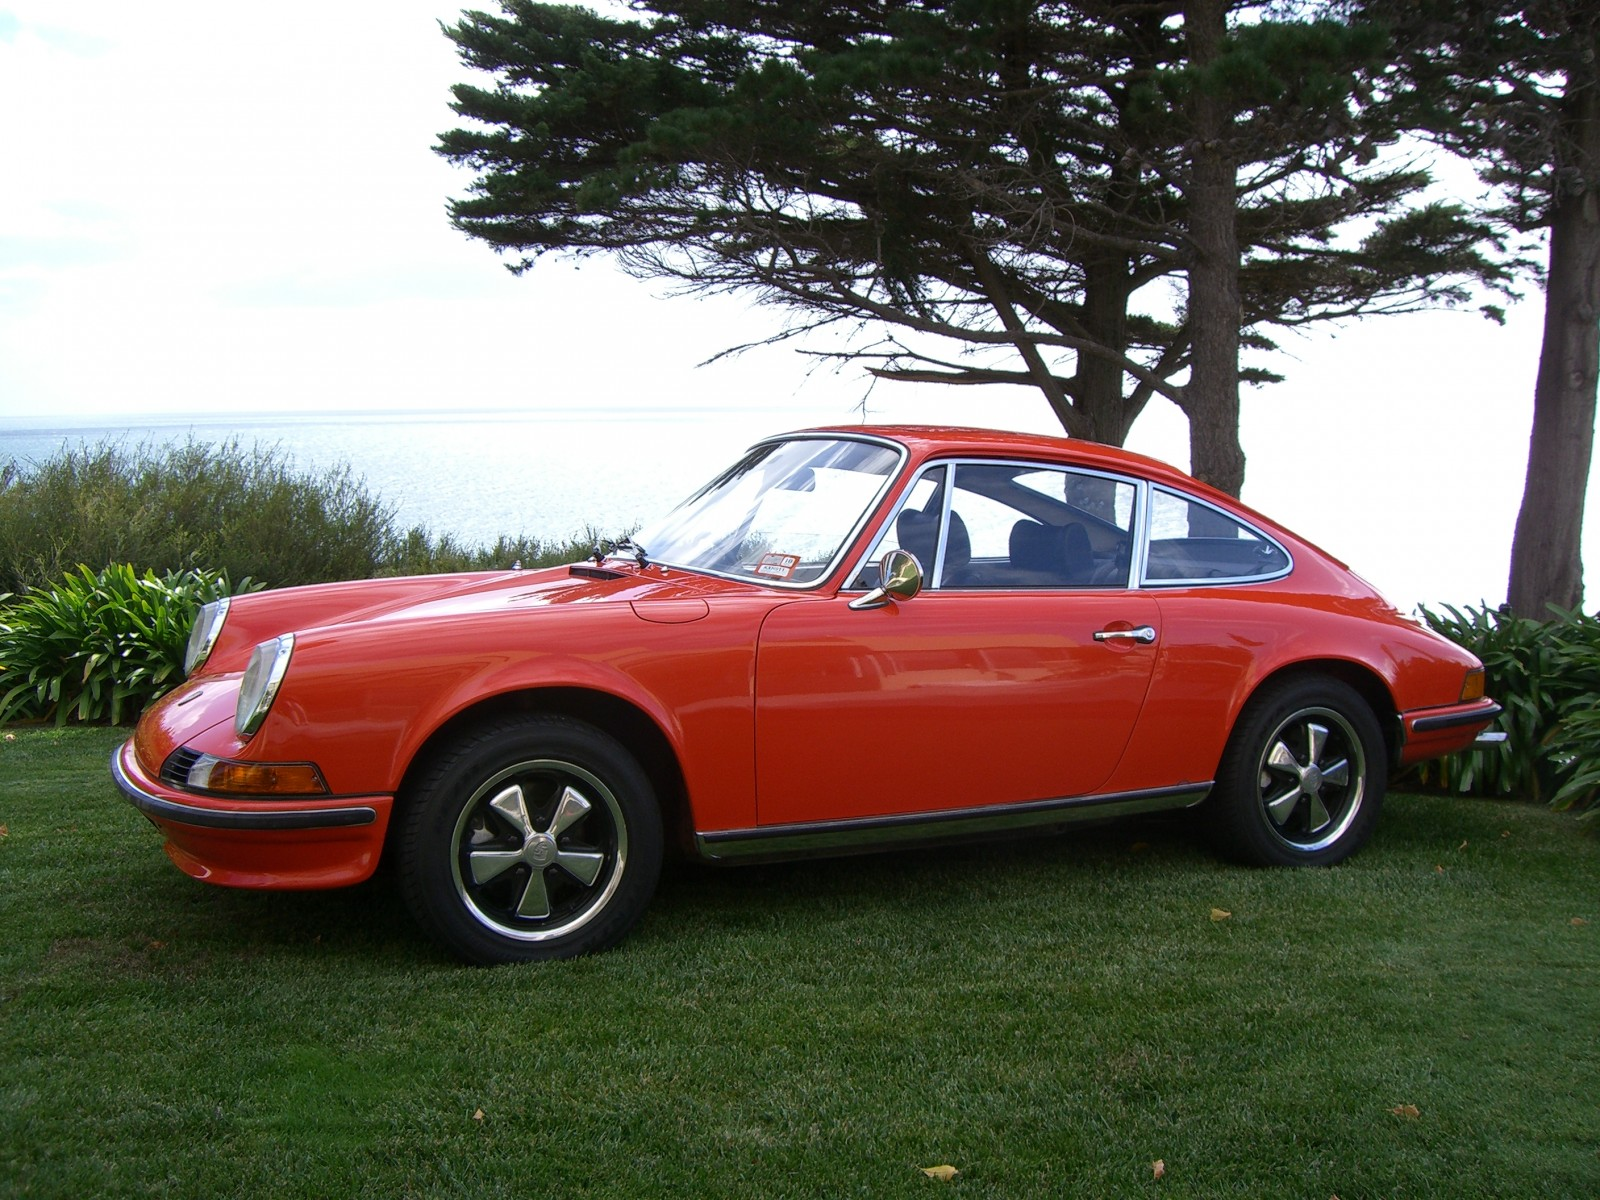 Stunning Classic Porsche For Sale Australia Images - Classic Cars ...